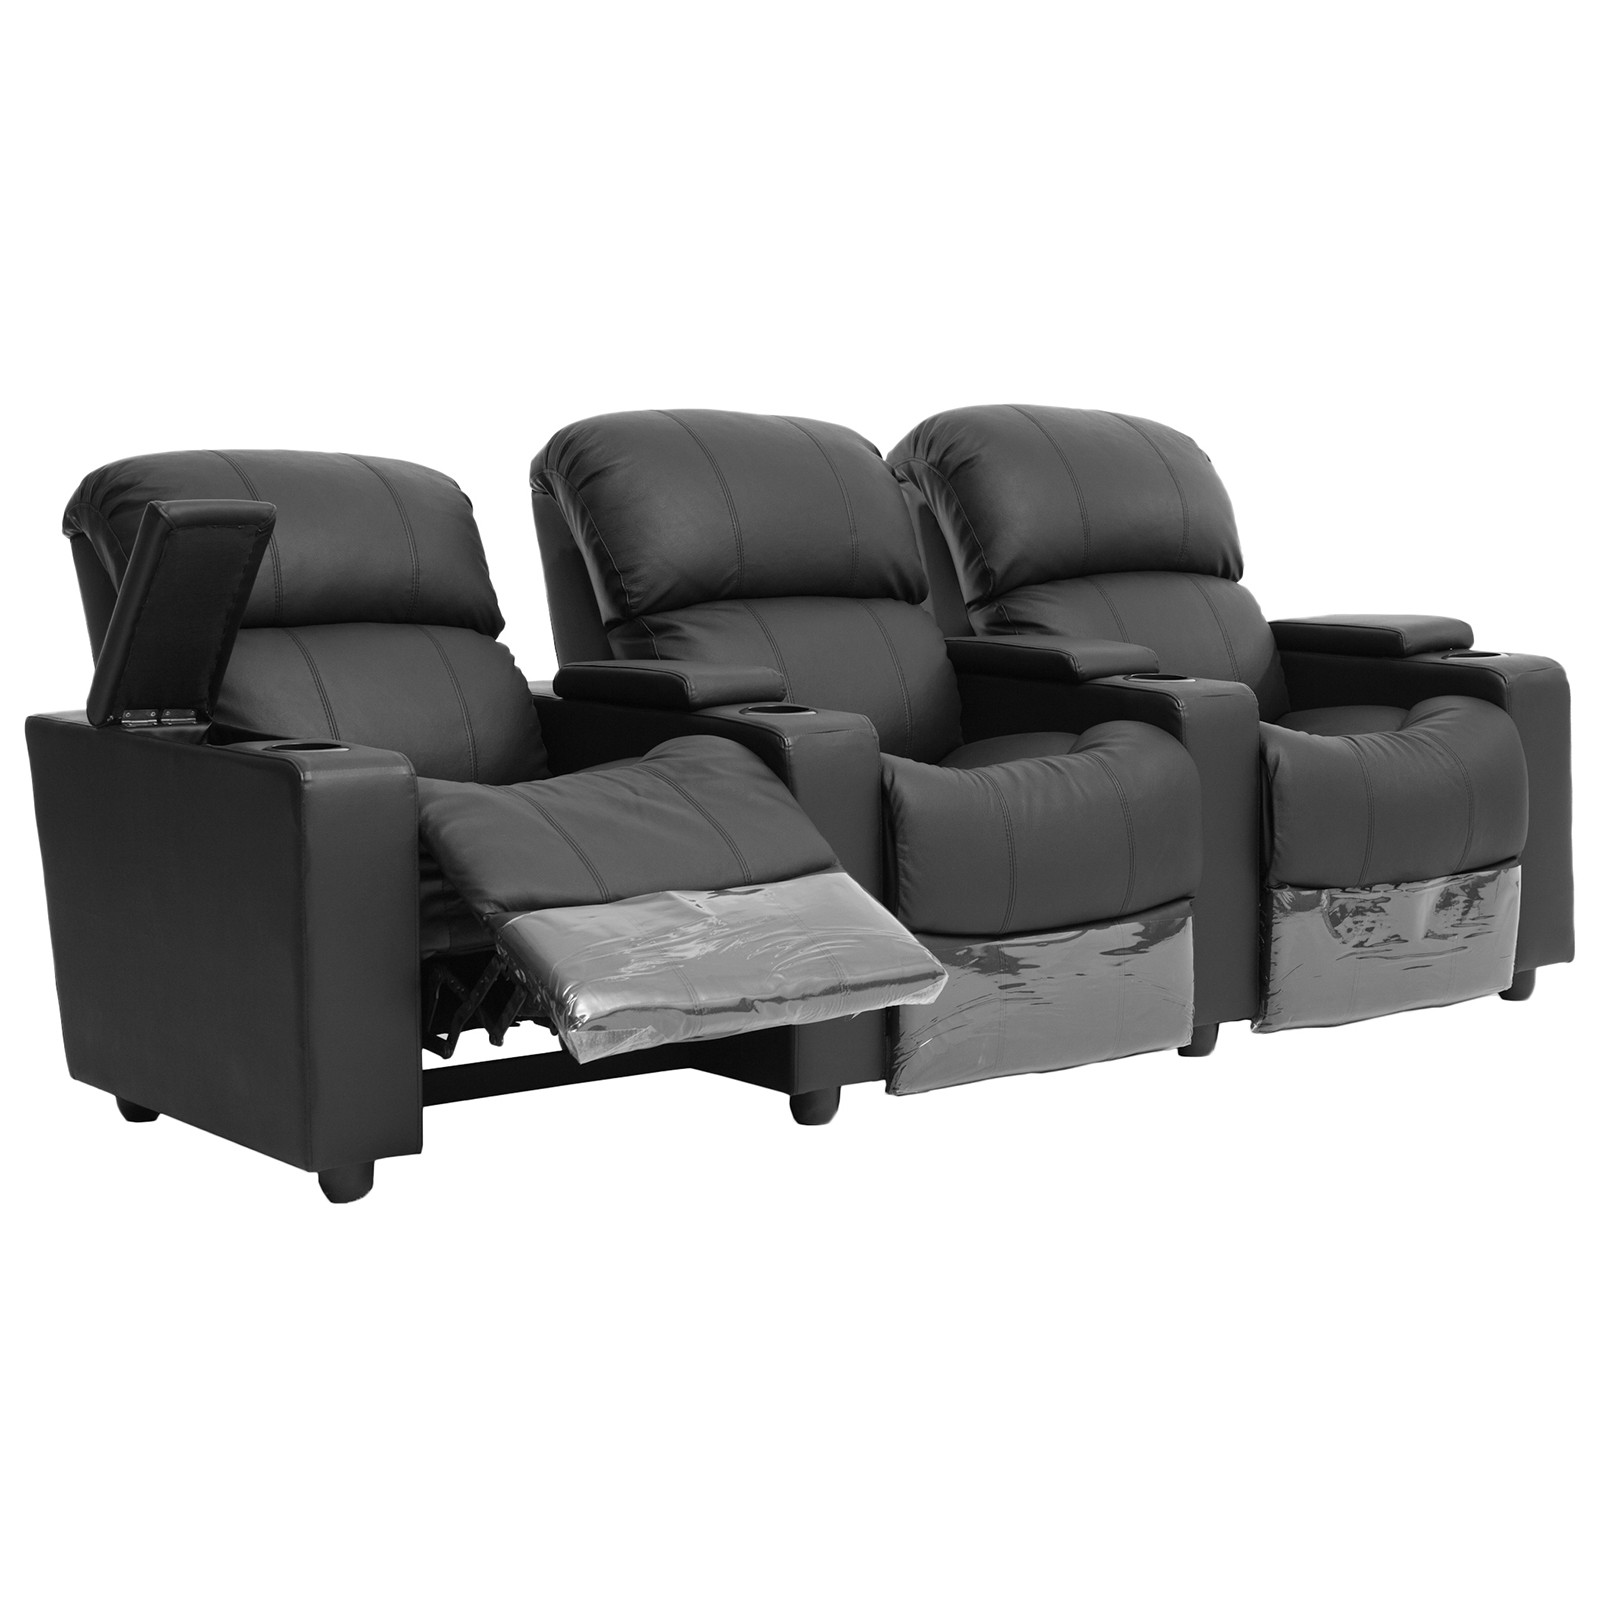 Sophie Brand New Leather 3 Seater Recliner Home Theater Entertainment Lounge  sc 1 st  MysuiteHome & Sophie Brand New Leather 3 Seater Recliner Home Theater ... islam-shia.org